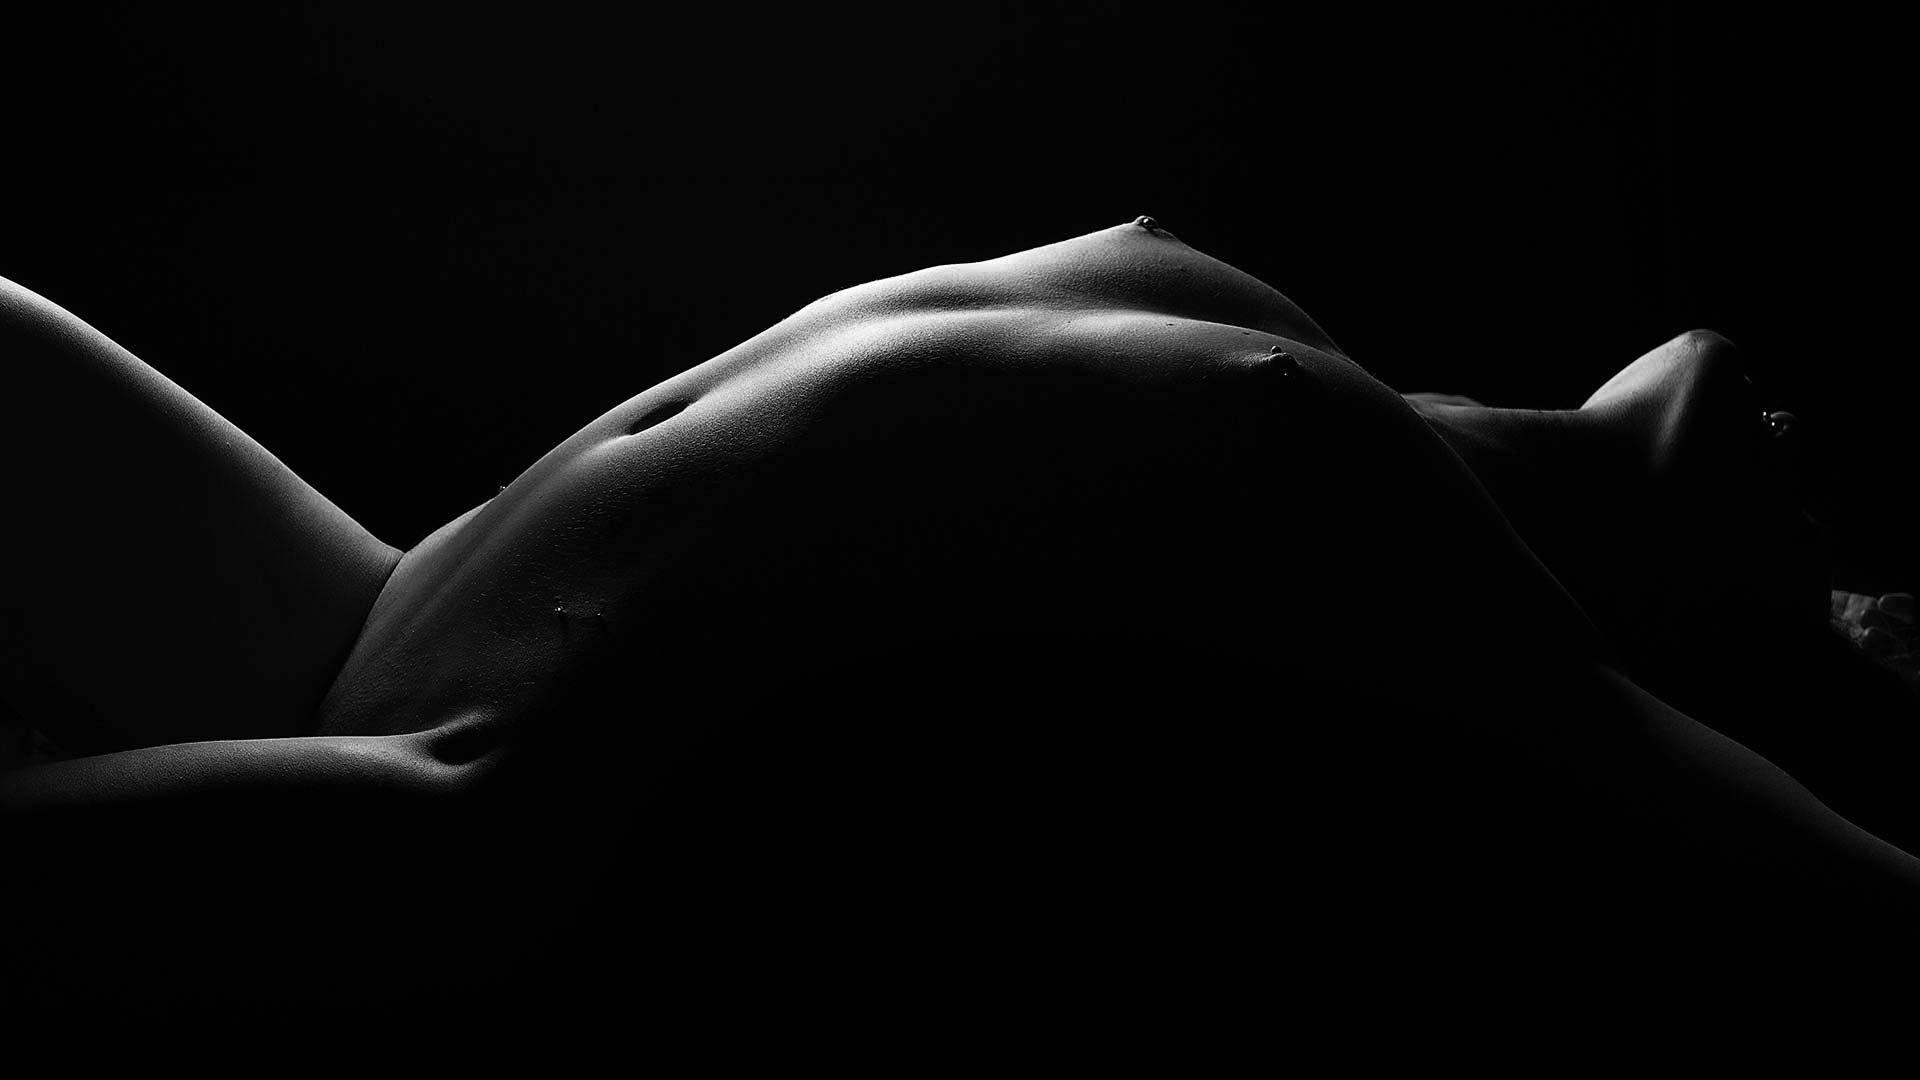 Black and white photography nude vagina